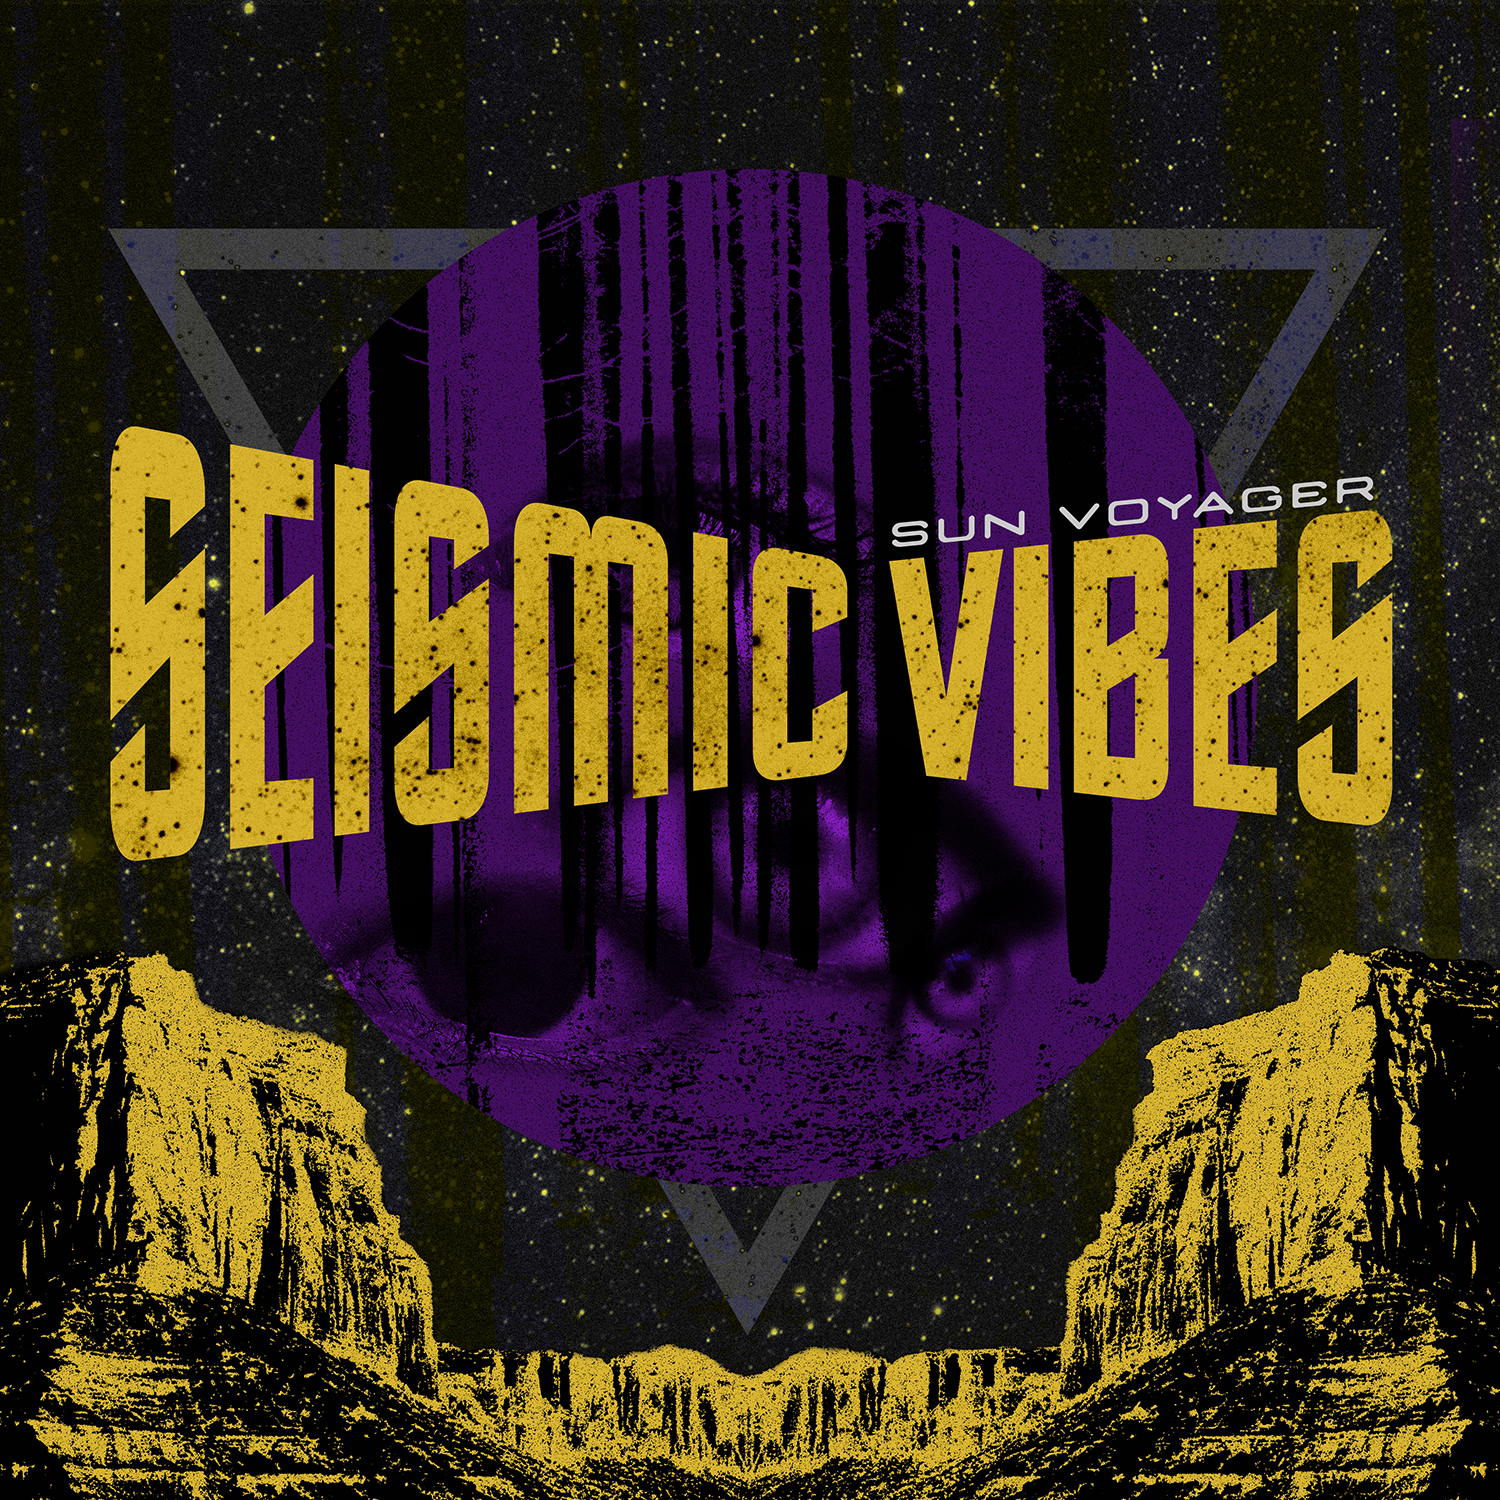 sun-voyager-seismic-vibes